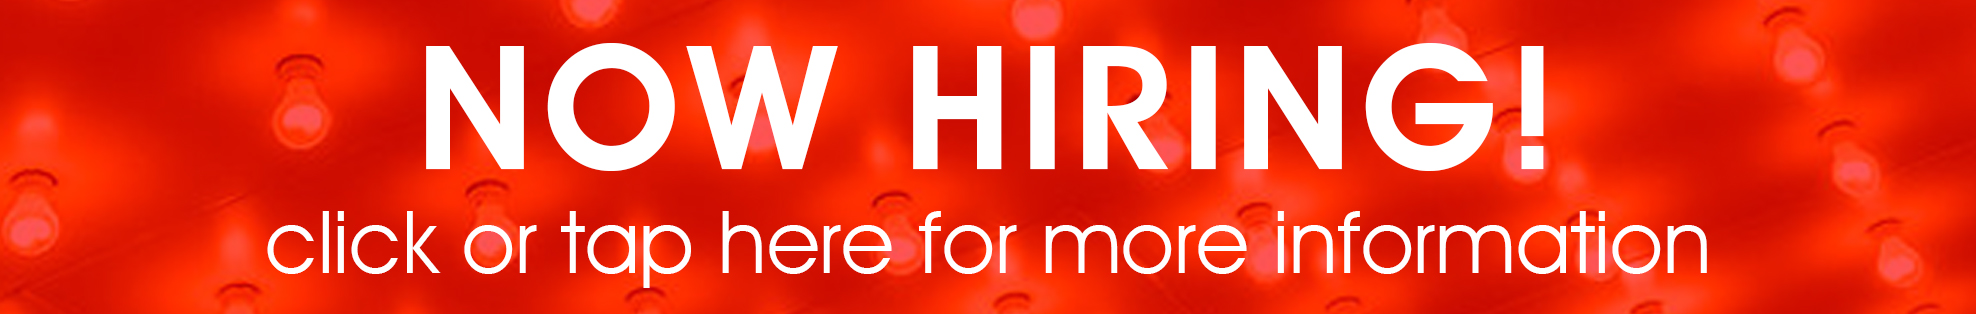 Now hiring - click or tap here for more information!